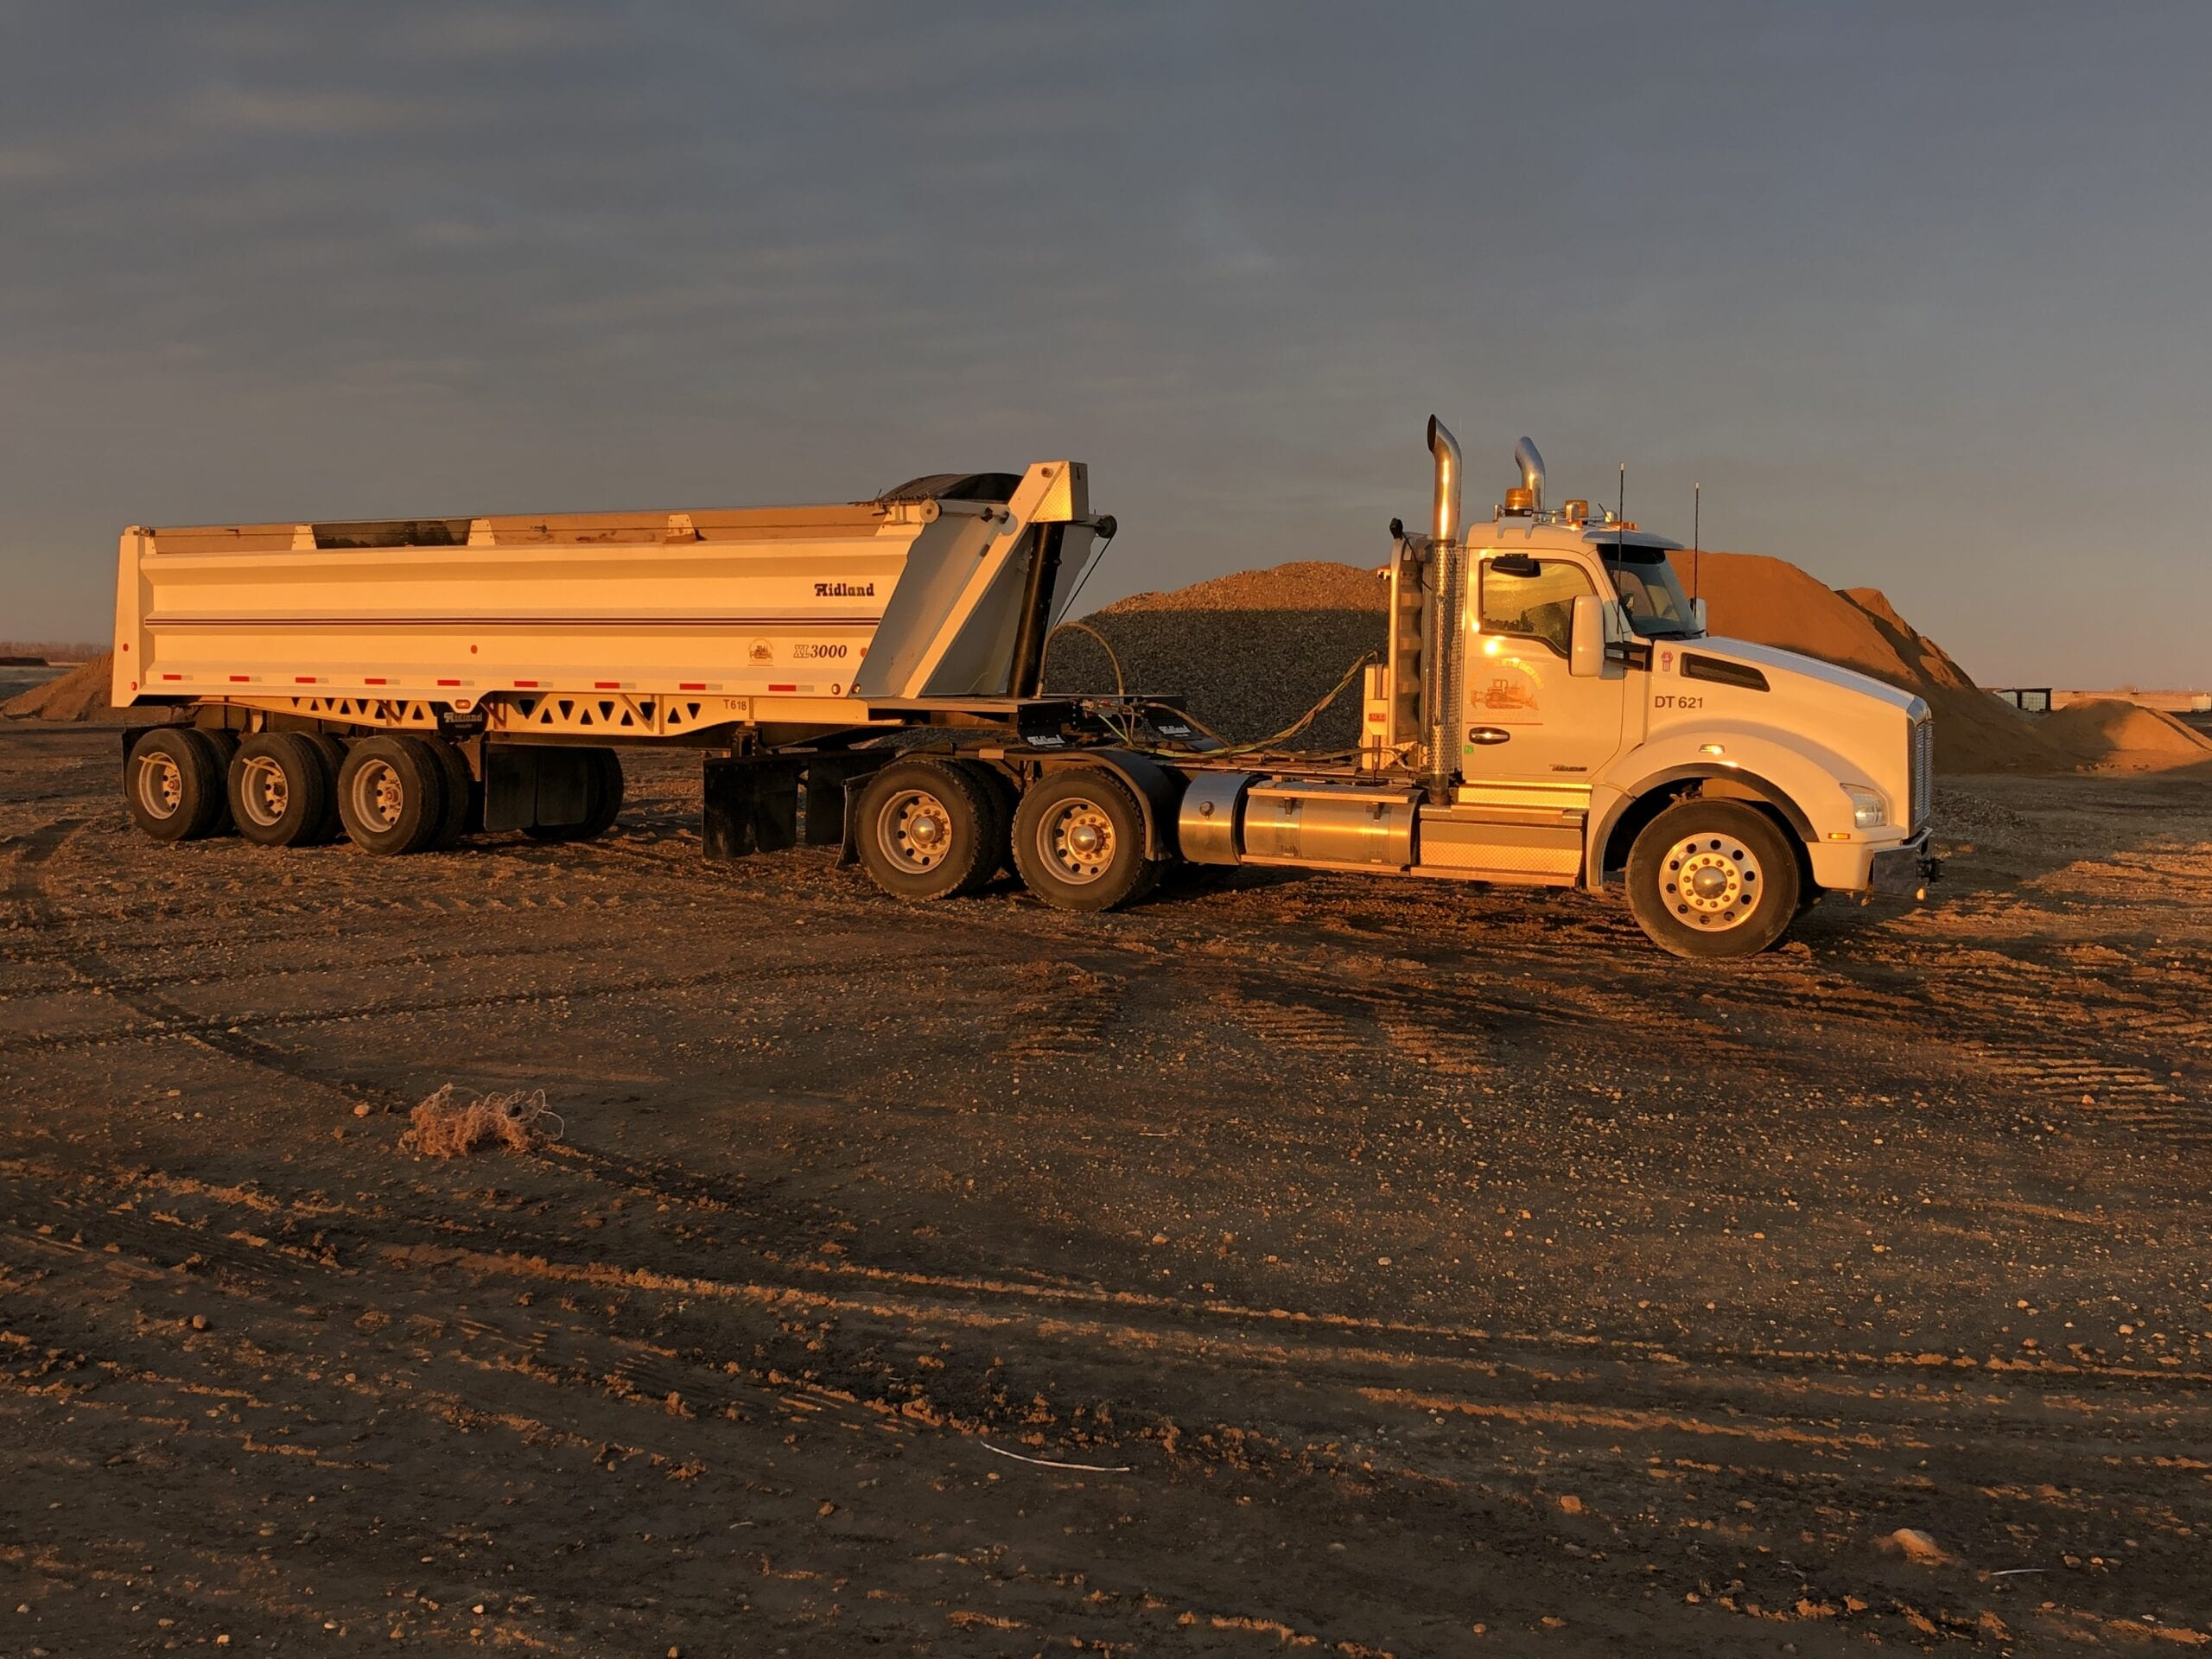 Semi-truck at dusk pulling a load of gravel to the landfill.